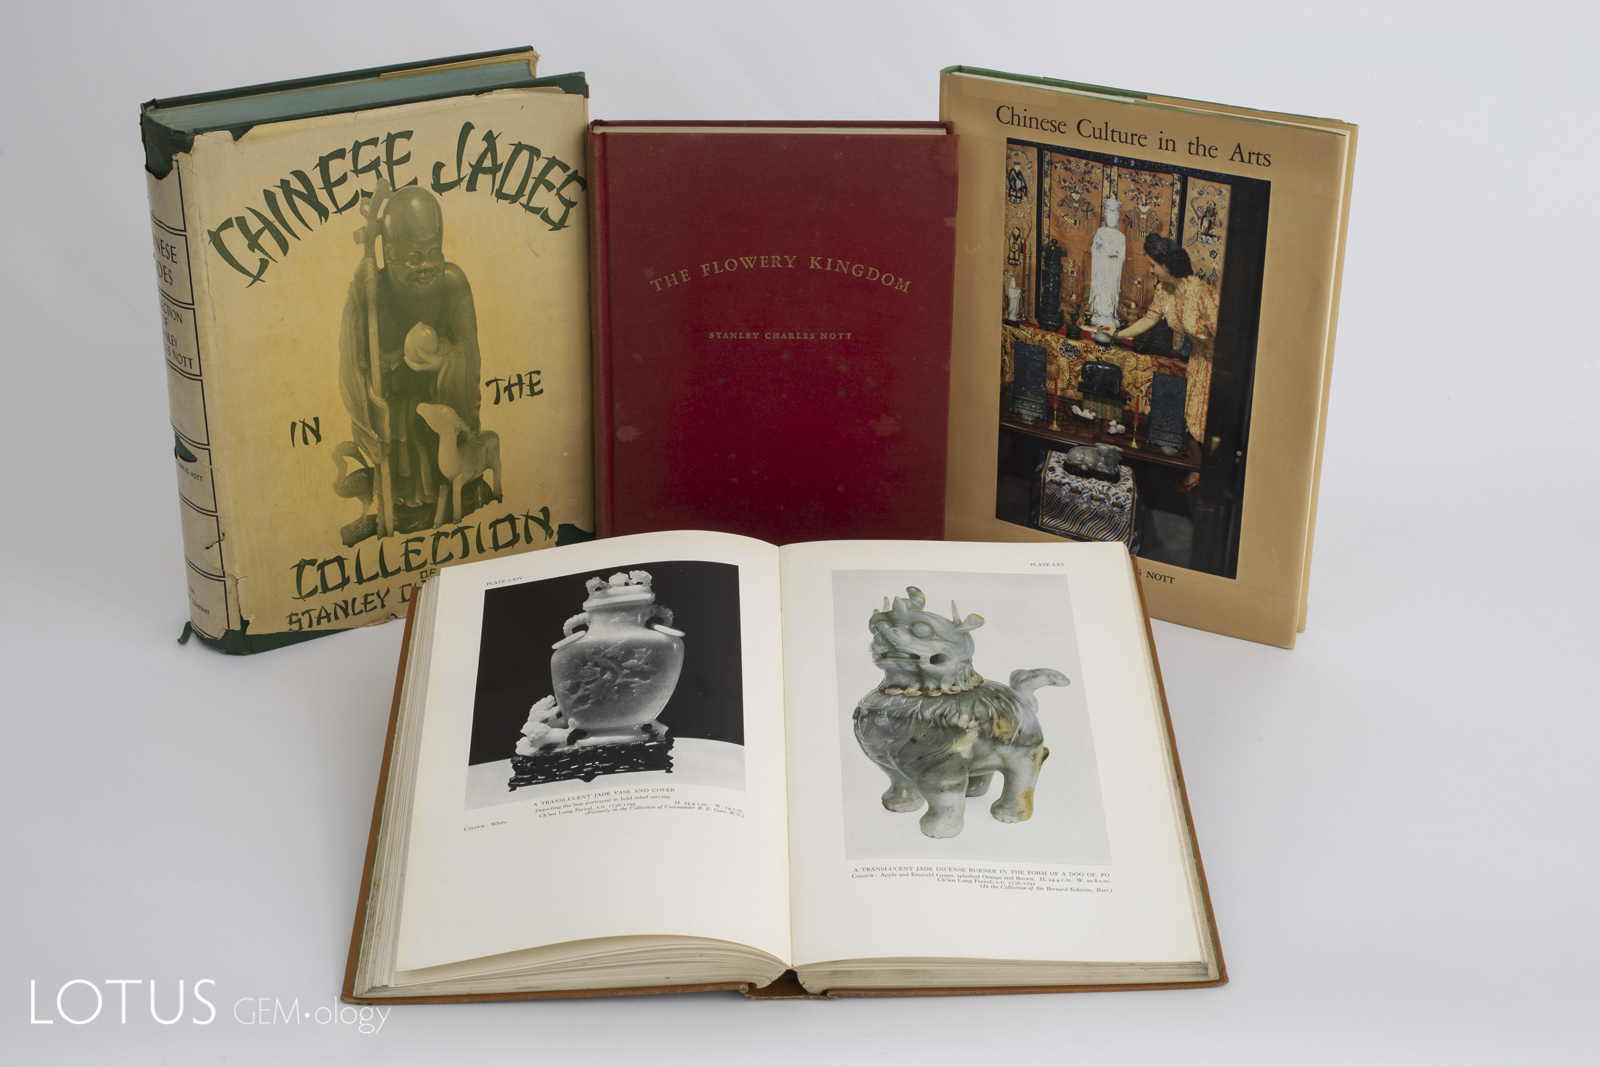 Charles Stanley Nott was perhaps the most prolific 20th century writer on jade. Here are four of his most collectable titles. In the foreground is his 1936 Chinese Jade Throughout the Ages. Note that two of these books feature dust jackets, which adds value, as so many were discarded.